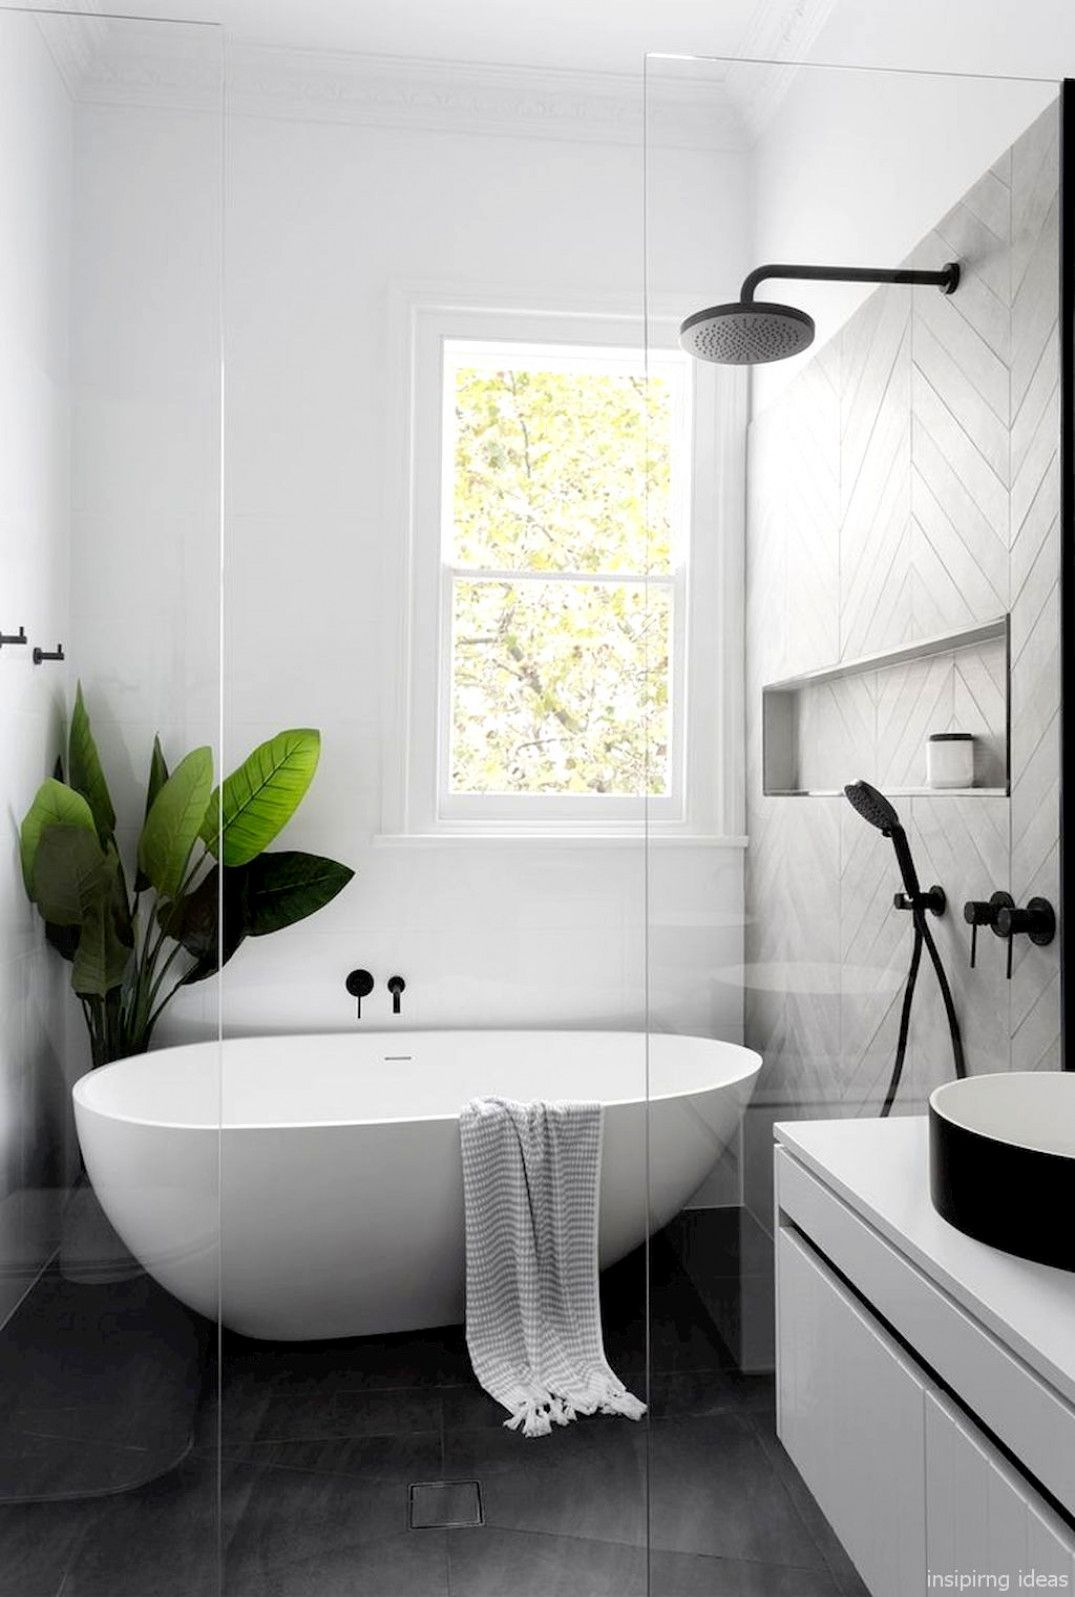 How Much Does A Bathroom Renovation Cost Badezimmer Fliesen Badezimmerfliesen Fliesen Design